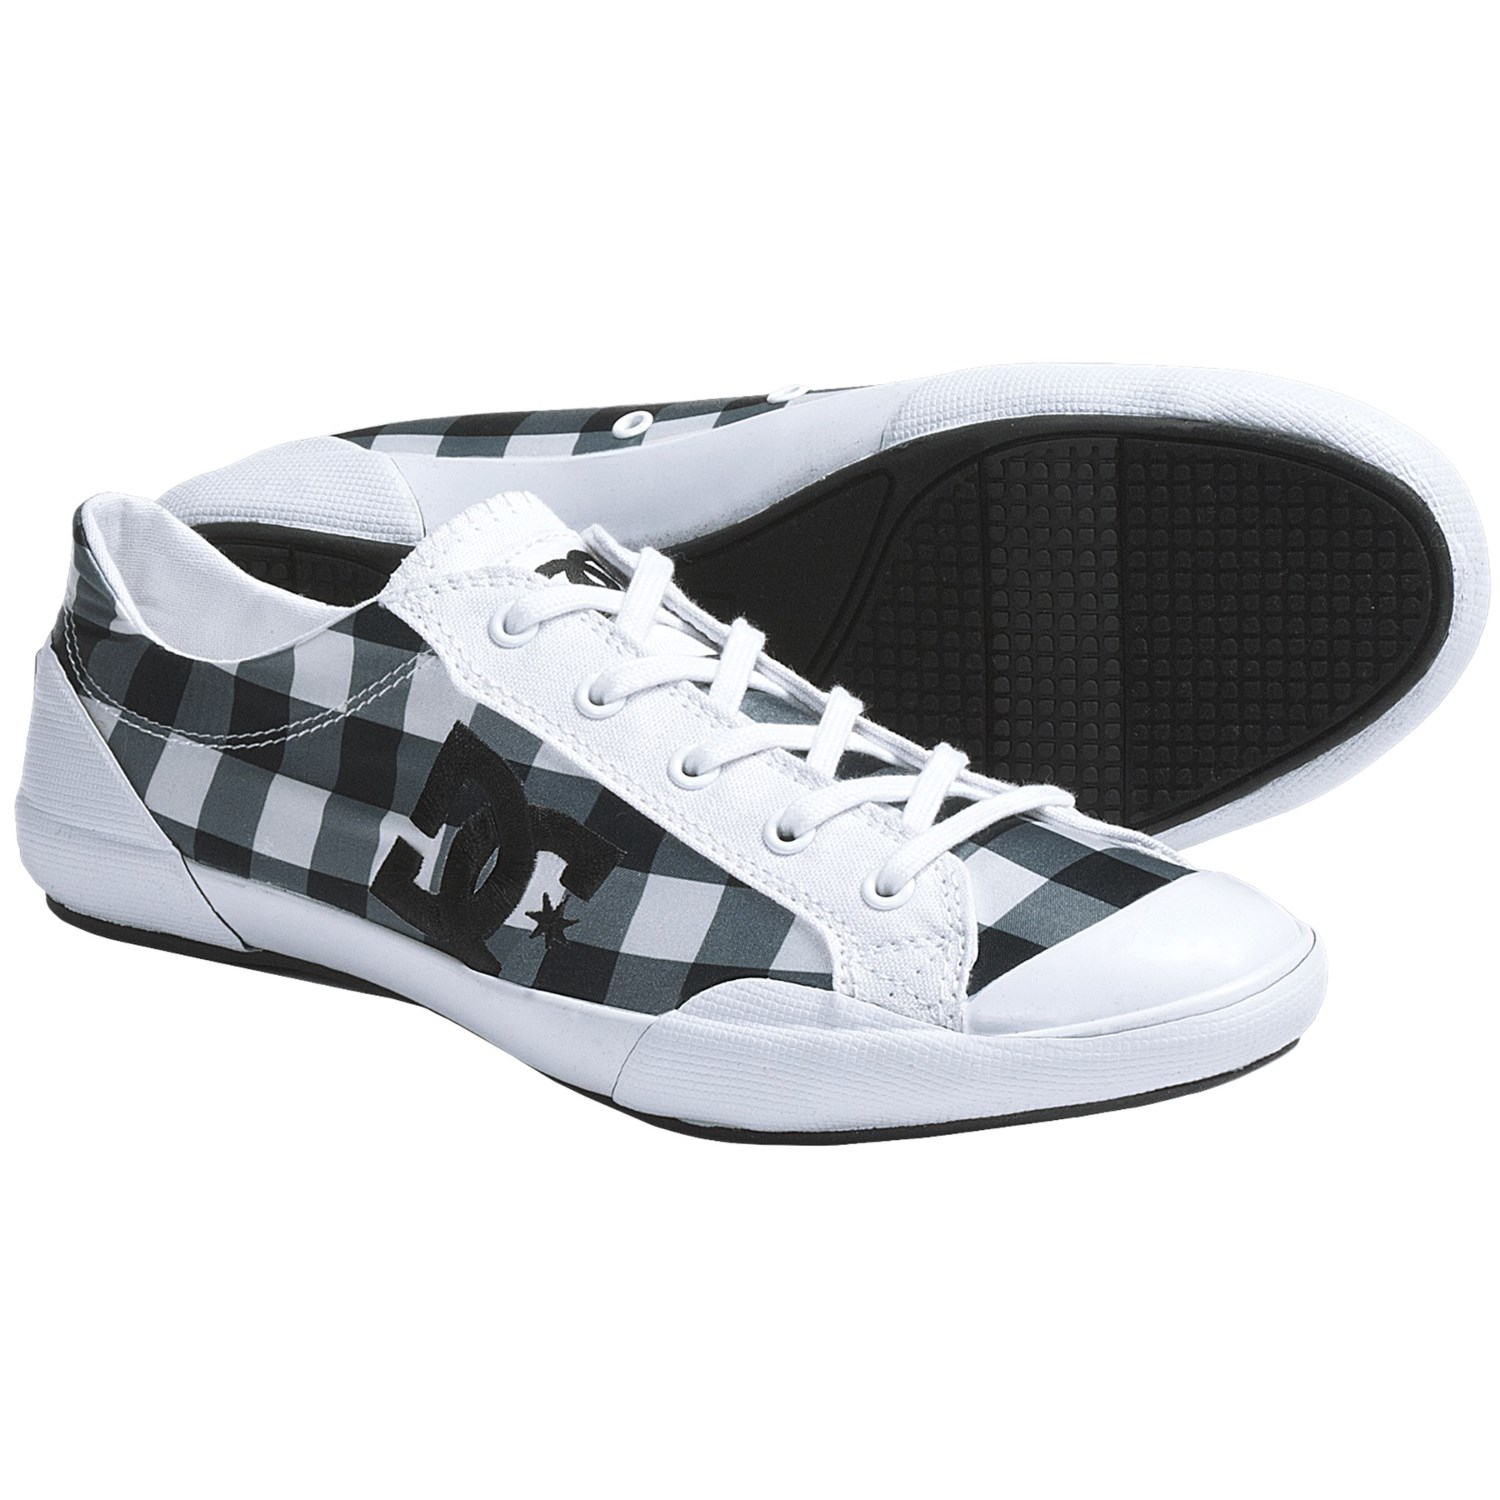 dc-shoes-chelsea-zero-low-se-skate-shoes-for-women-in-black-white